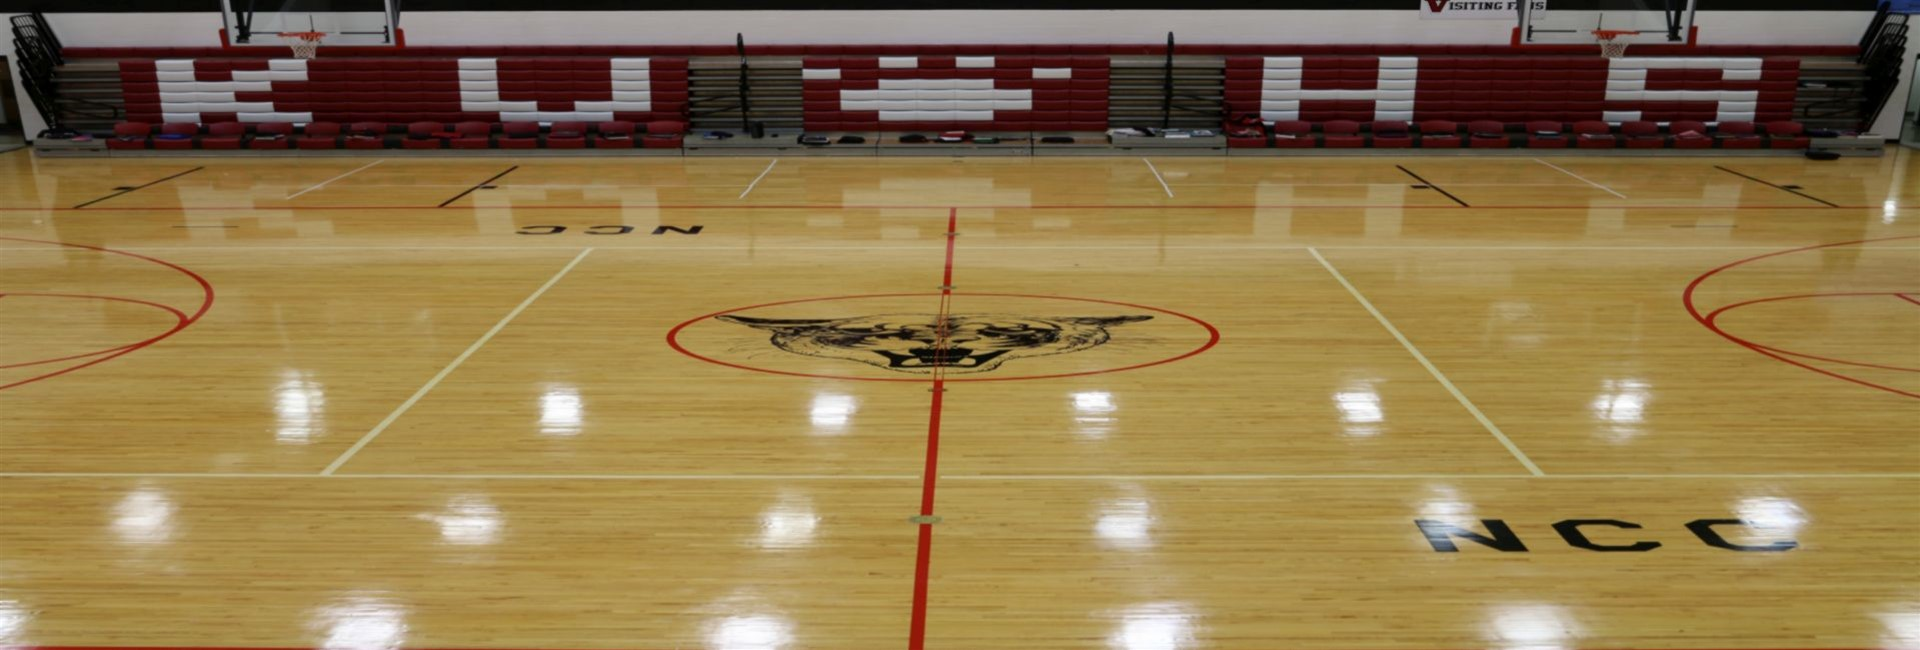 Kankakee Valley High School Gym